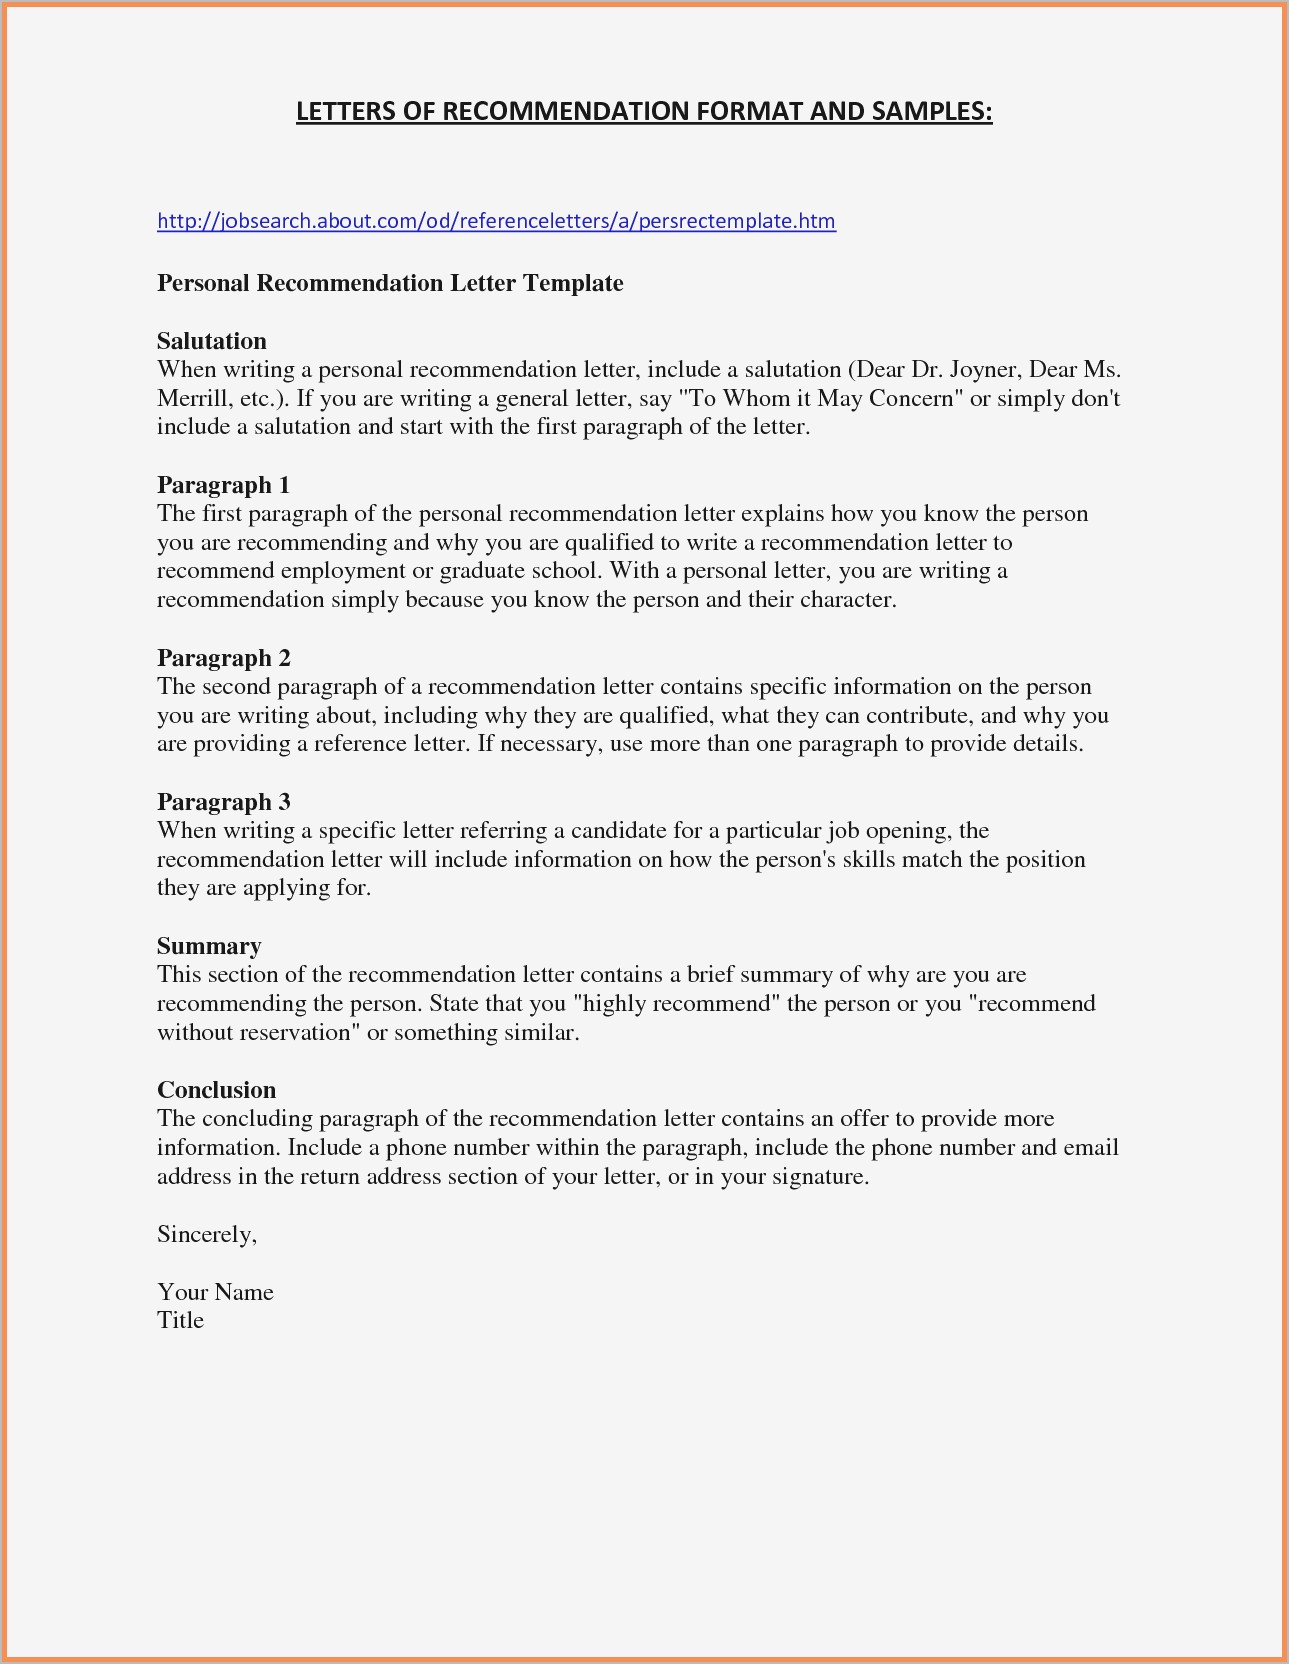 Nursing Letter Of Recommendation Template - Letter Of Re Mendation for A Nurse Friend Eczalinf